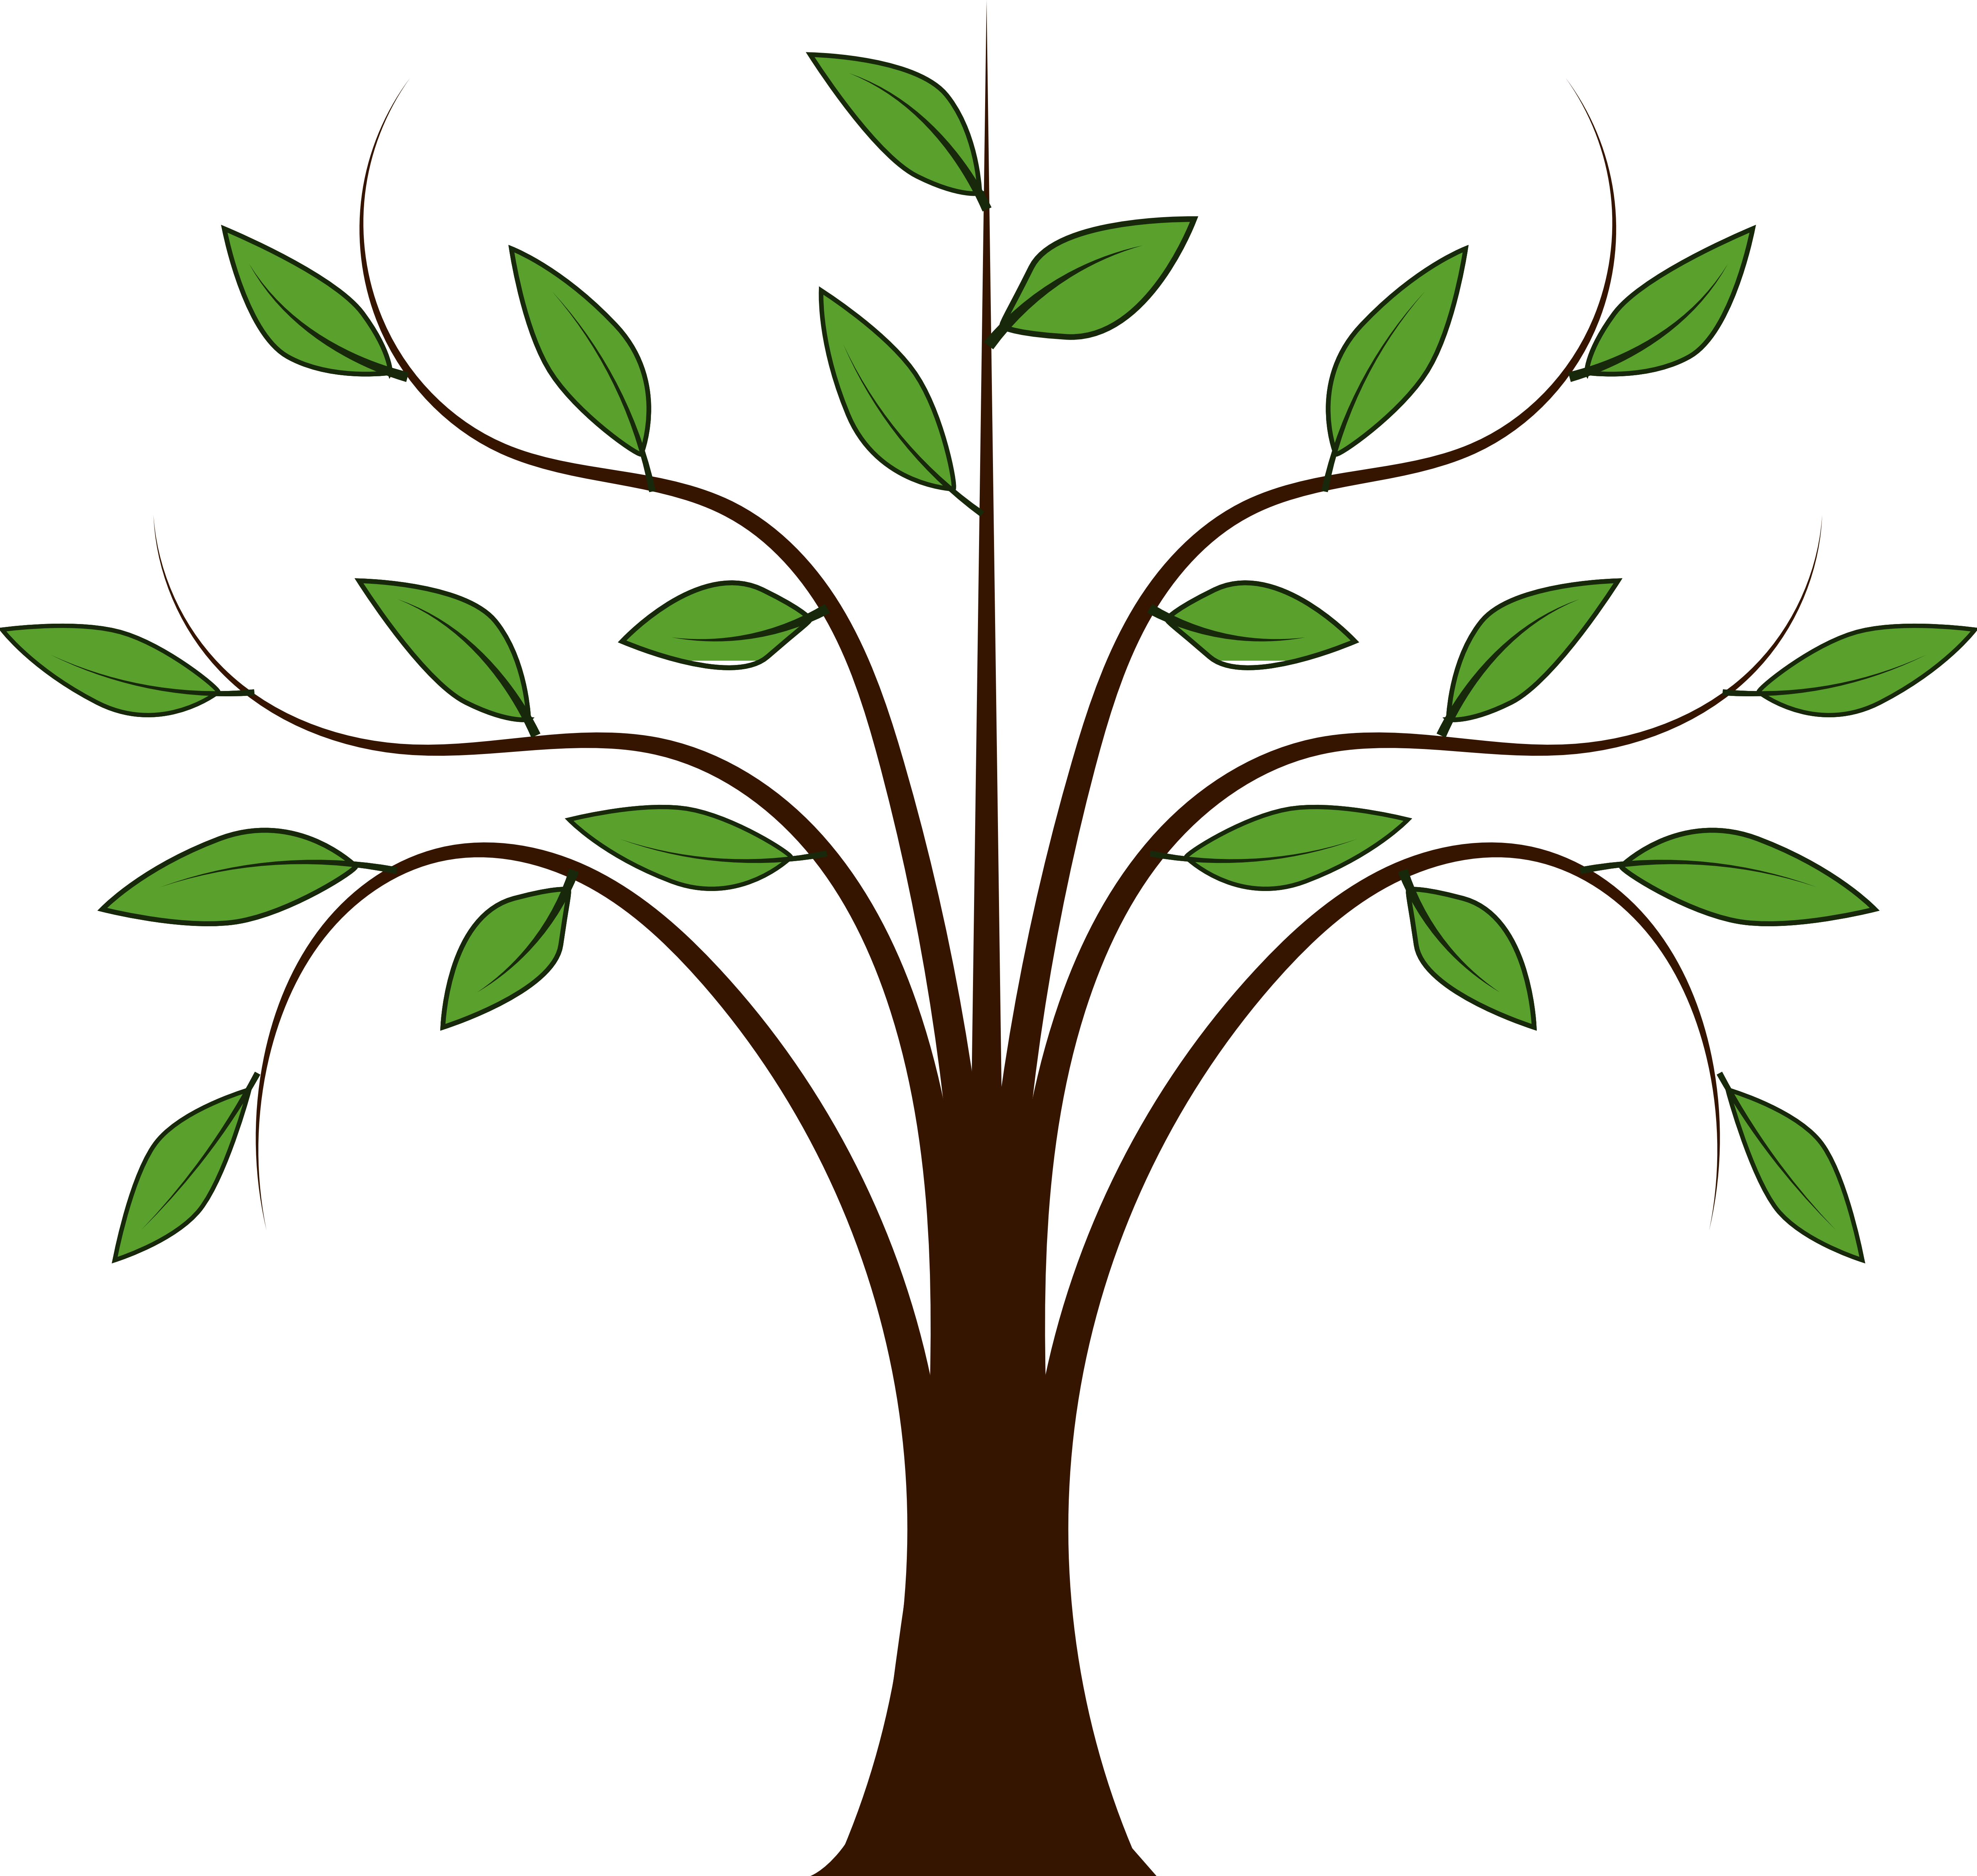 Tree roots clipart vector transparent Tree Clipart & Tree Clip Art Images - ClipartALL.com vector transparent